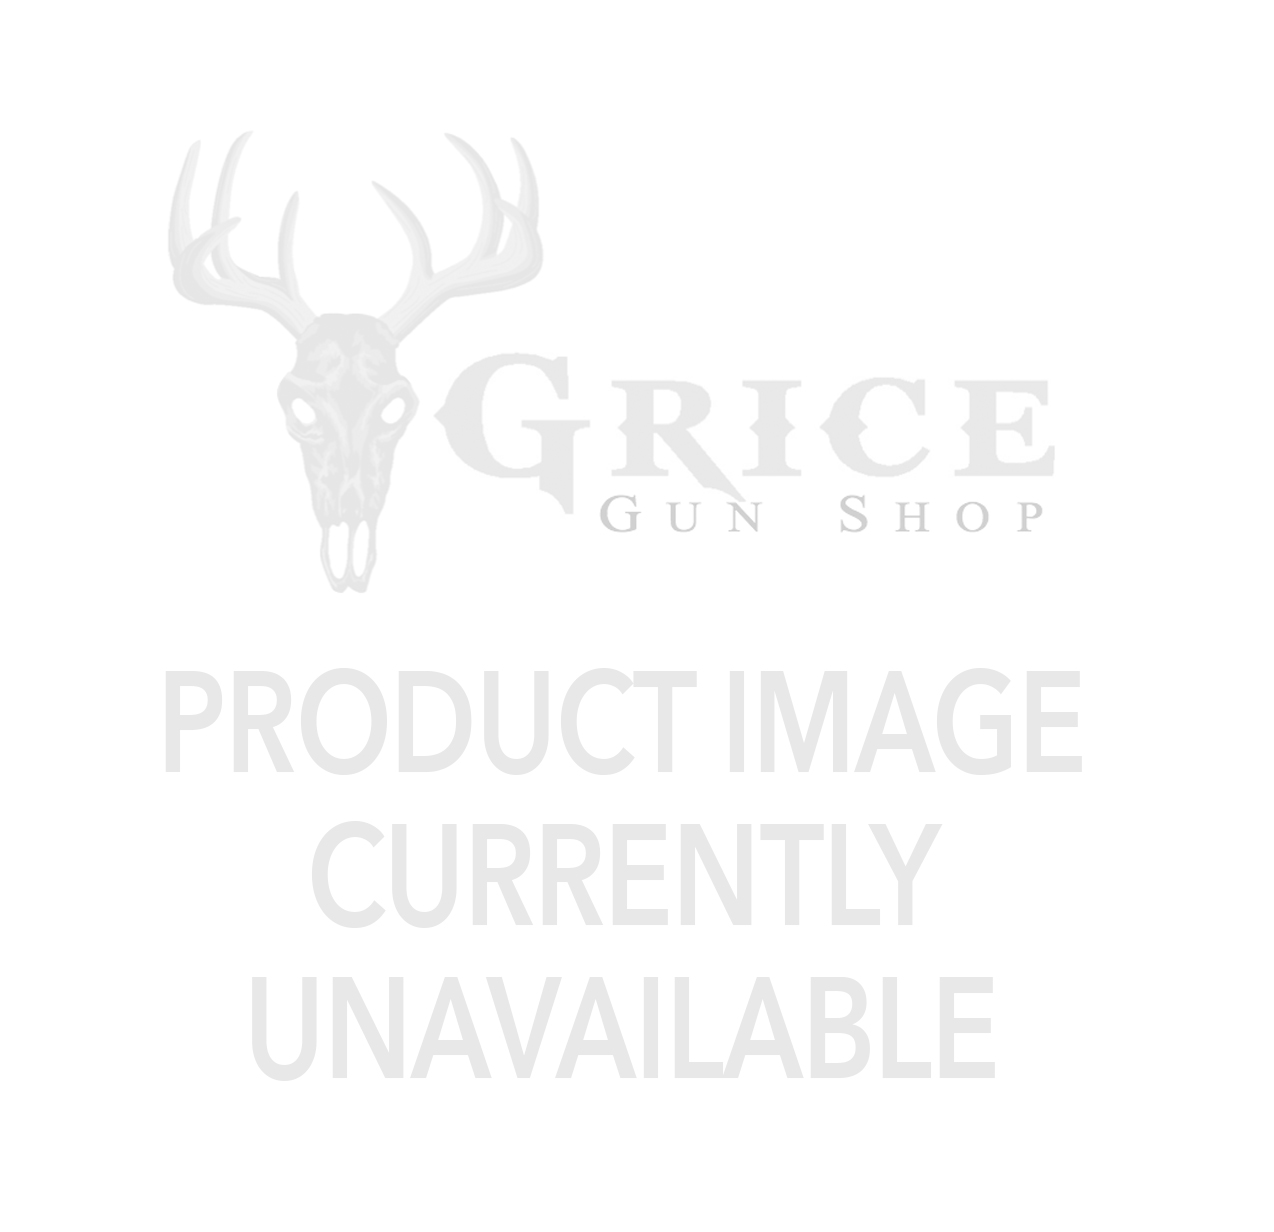 Allen - Duallie Tactical Sling (Single & Two Point)